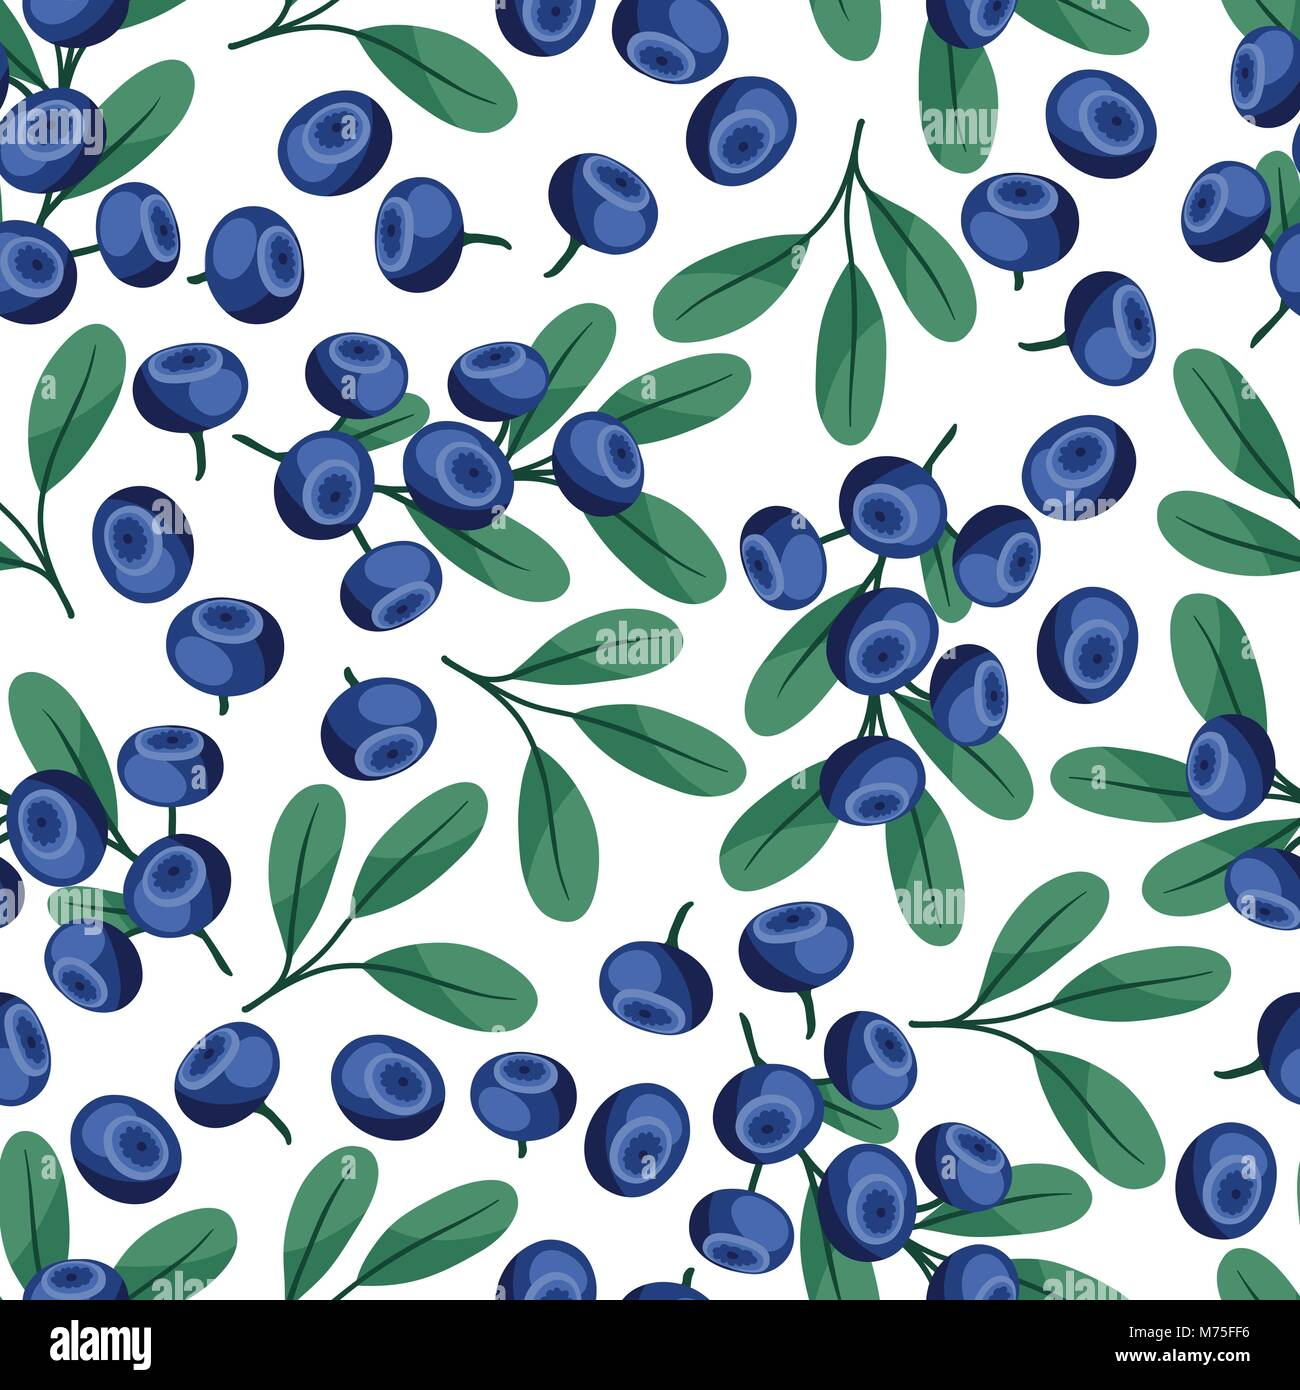 Seamless nature pattern with blueberries. - Stock Vector